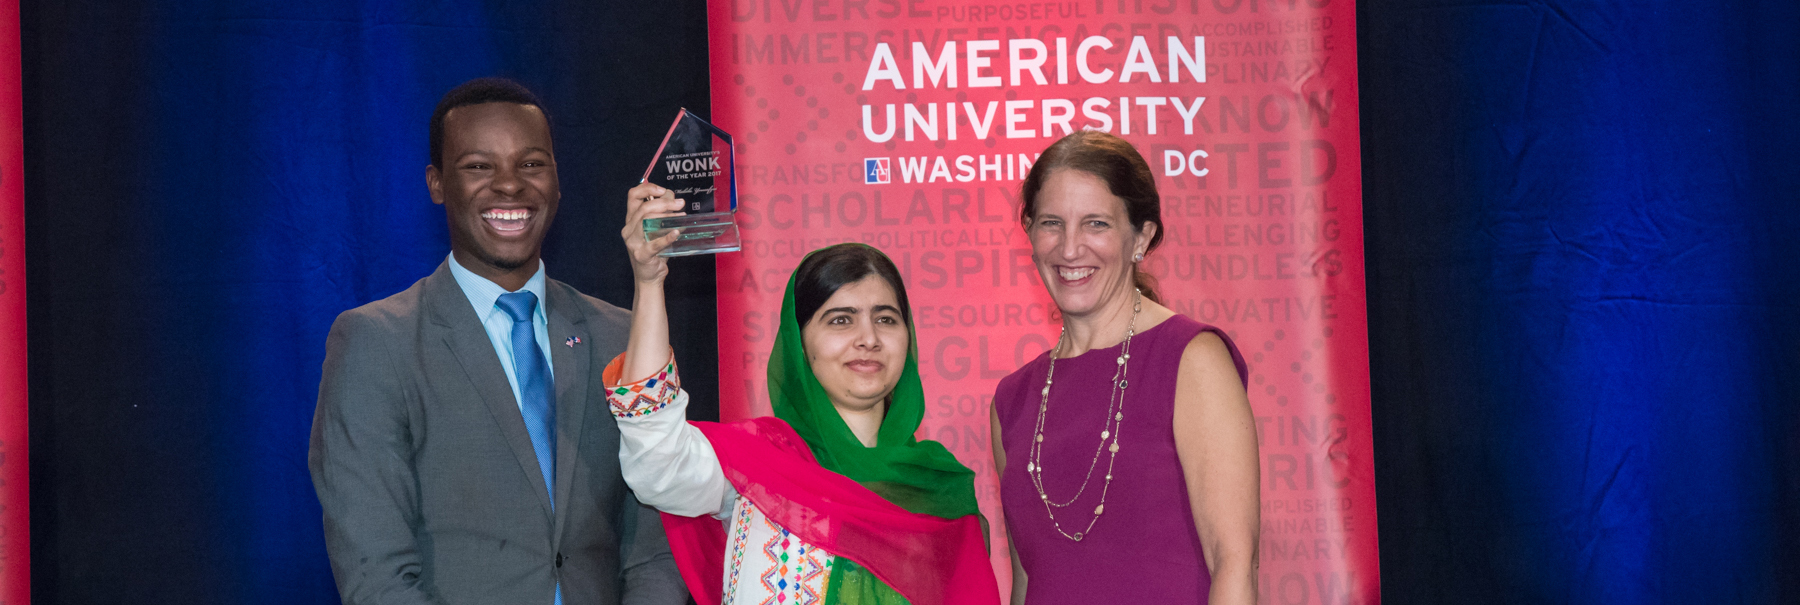 Wonk of the Year Malala Yousafzai